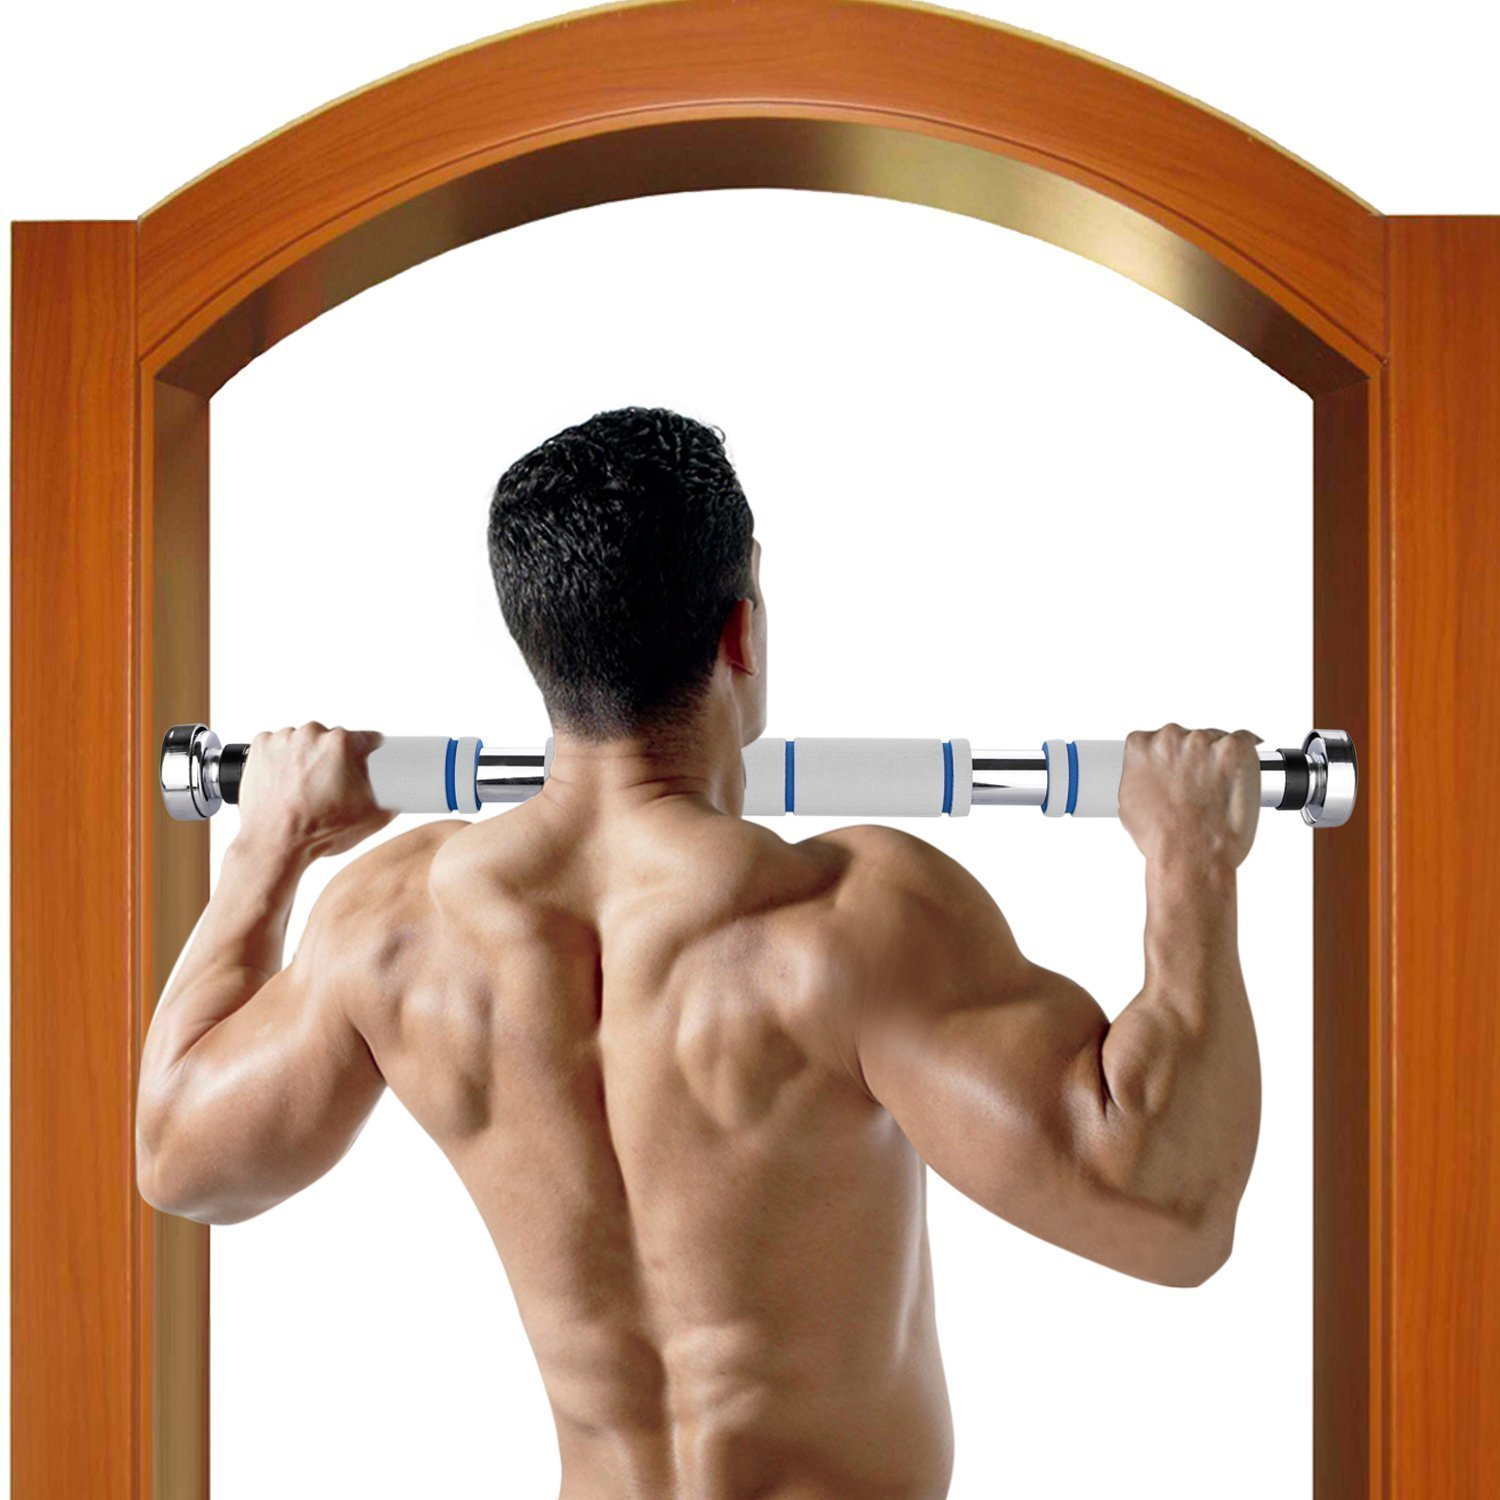 Physport Doorway Pull Up Bar Chin up Bar for Home Gym by Physport